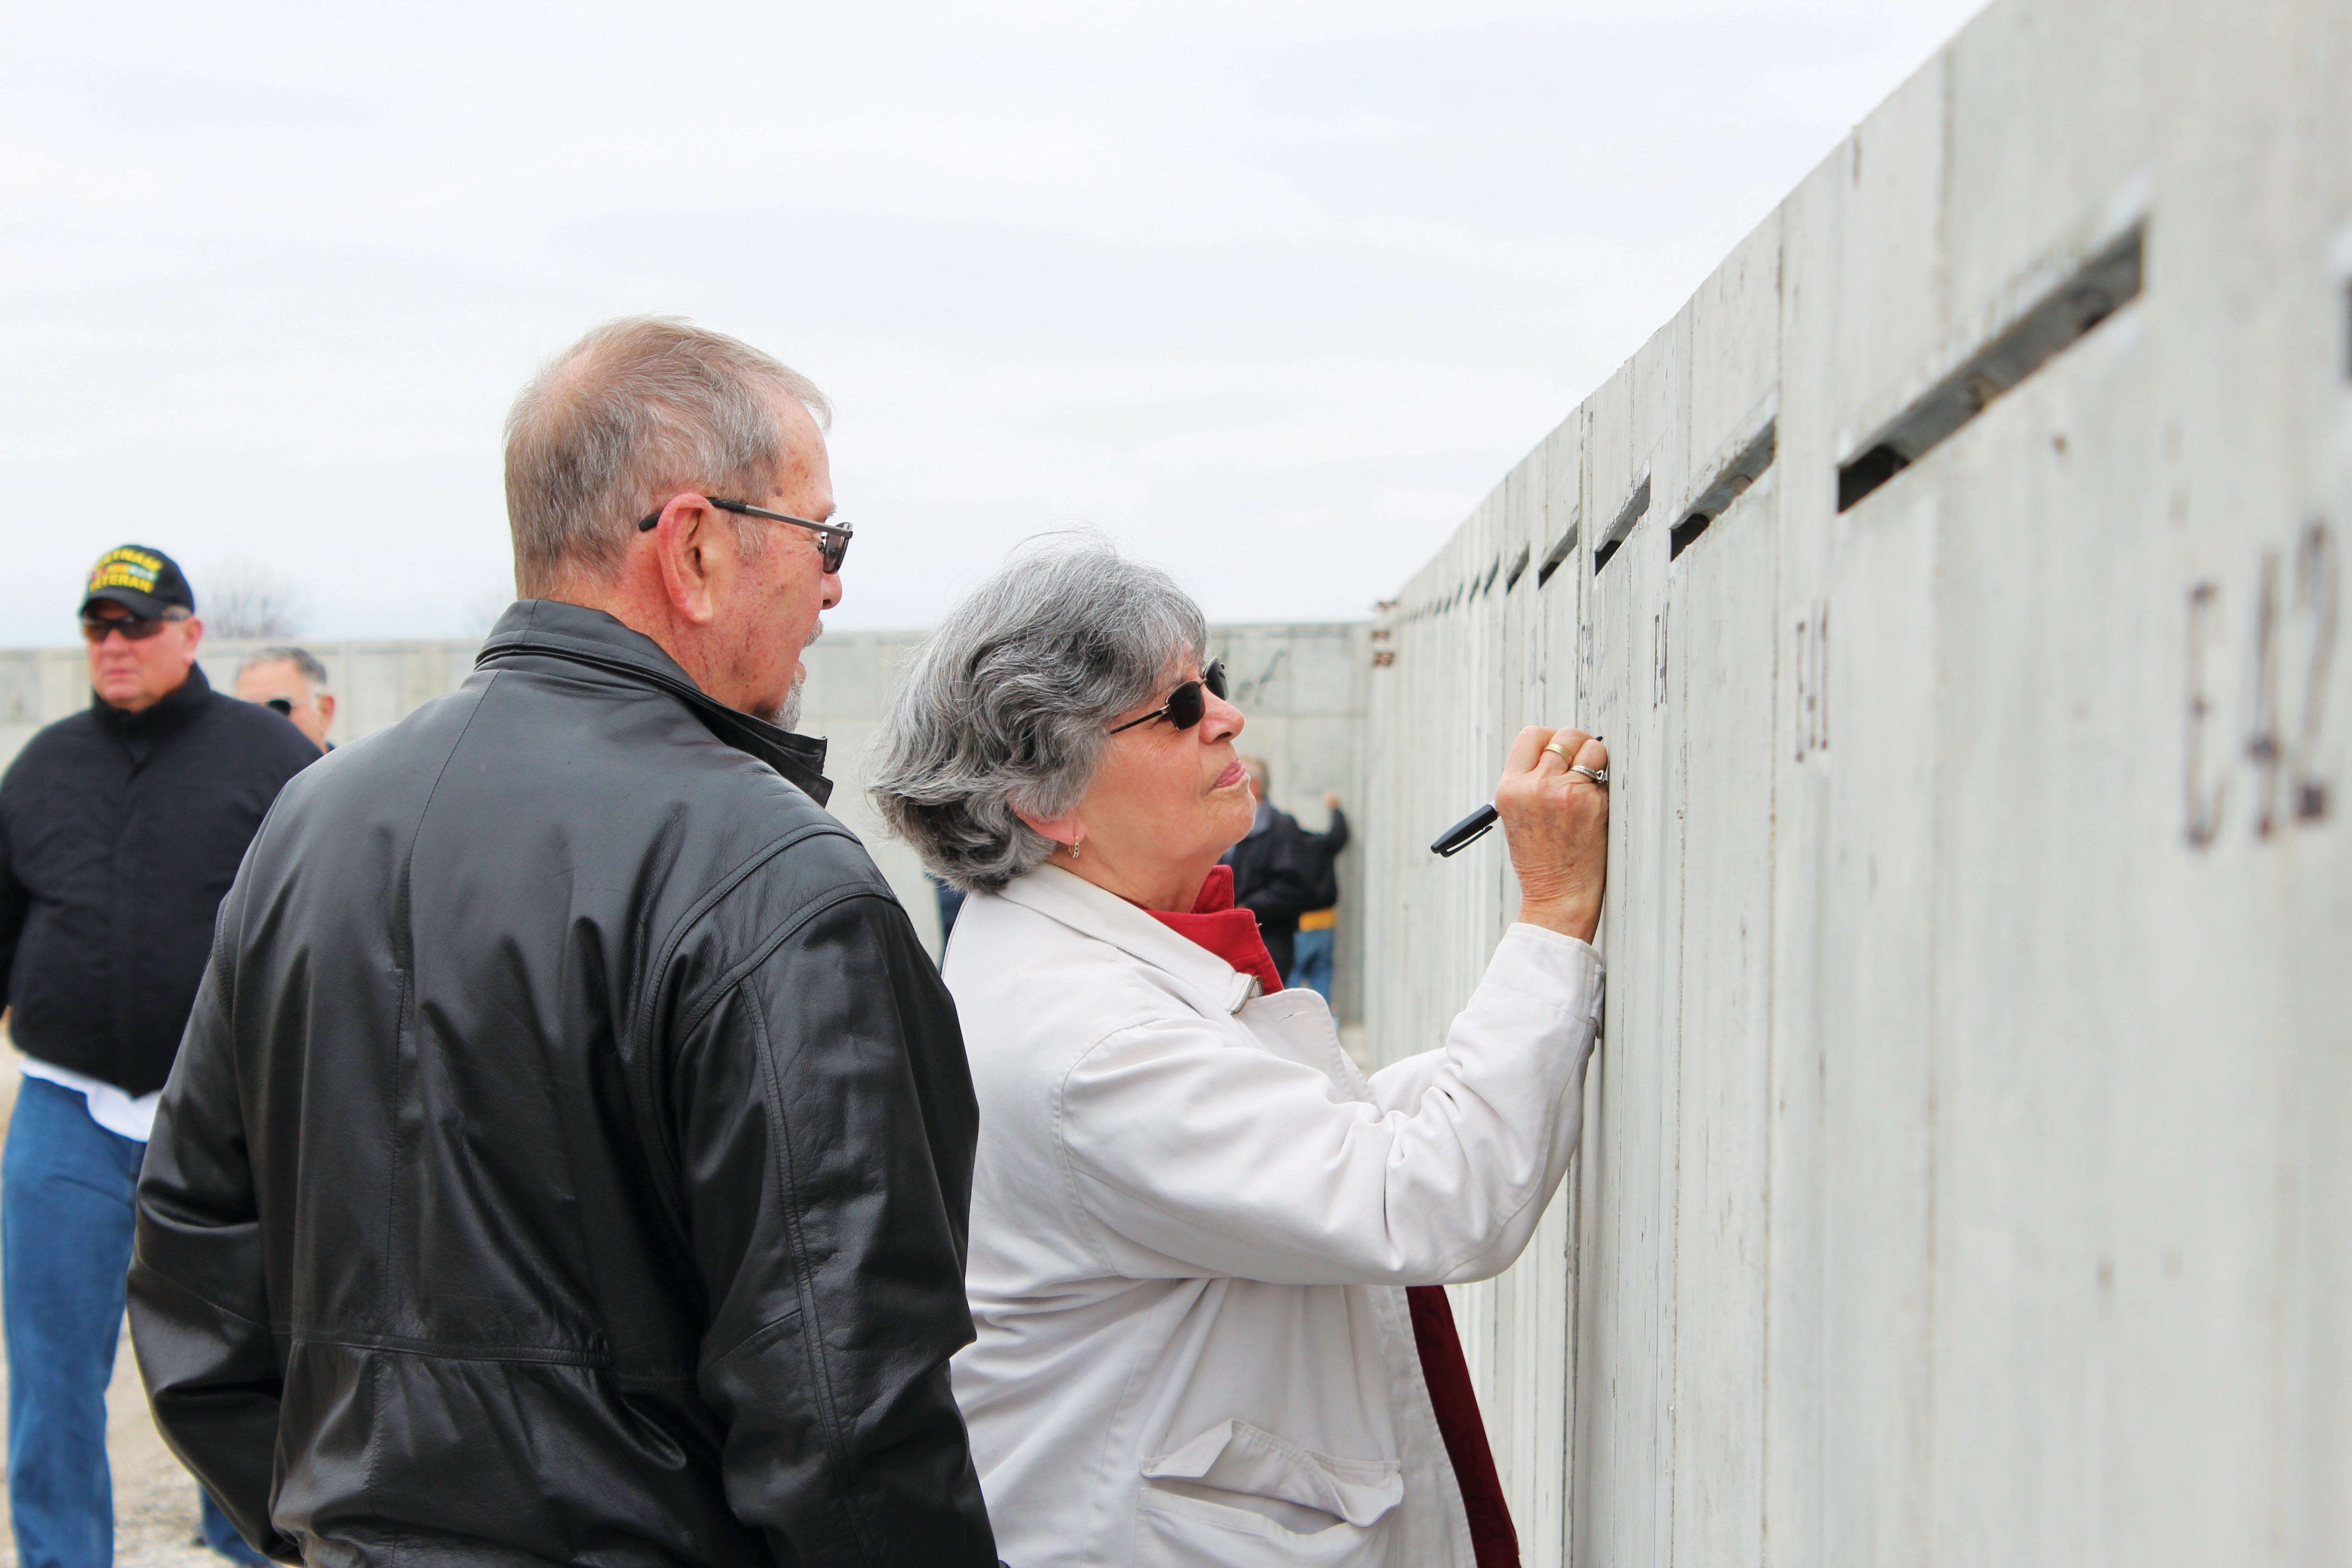 """John and Dorris Buehler of Perryville list the names of several family members who have served in the military Sunday, March 25, 2018, during the """"Mark of Remembrance"""" event at Missouri's National Veterans Memorial site in Perryville. """"It's my brother, self, son, and grandson,"""" John said. He chose panel E39, the year he was born, so that he could remember the signature's location. The signatures and other remembrances will be left in place as the panels are installed, making them a permanent — if hidden — part of the memorial."""